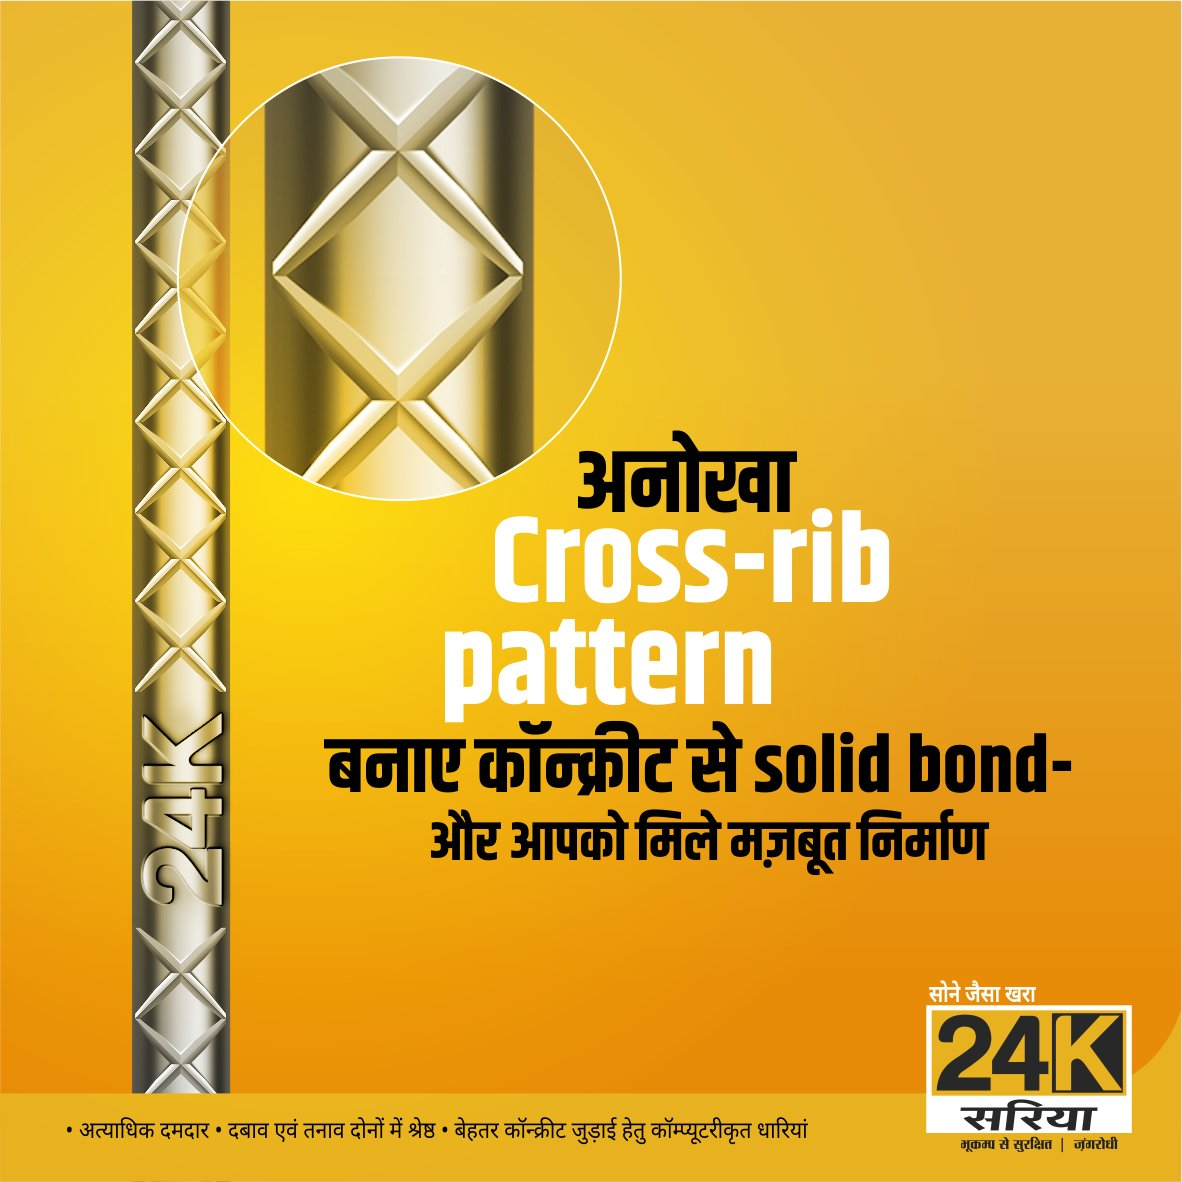 The unique 'X' Cross Rib pattern on TMT Bars ensures strong bonding with concrete thereby giving excellent strength for your structure. For your dream home use only the best, use 24K Sariya. _____________  #24K #Sariya #TMT #TMTsariya #Bonding #Strength #CrossRibPattern https://t.co/IVxpIJTLFl